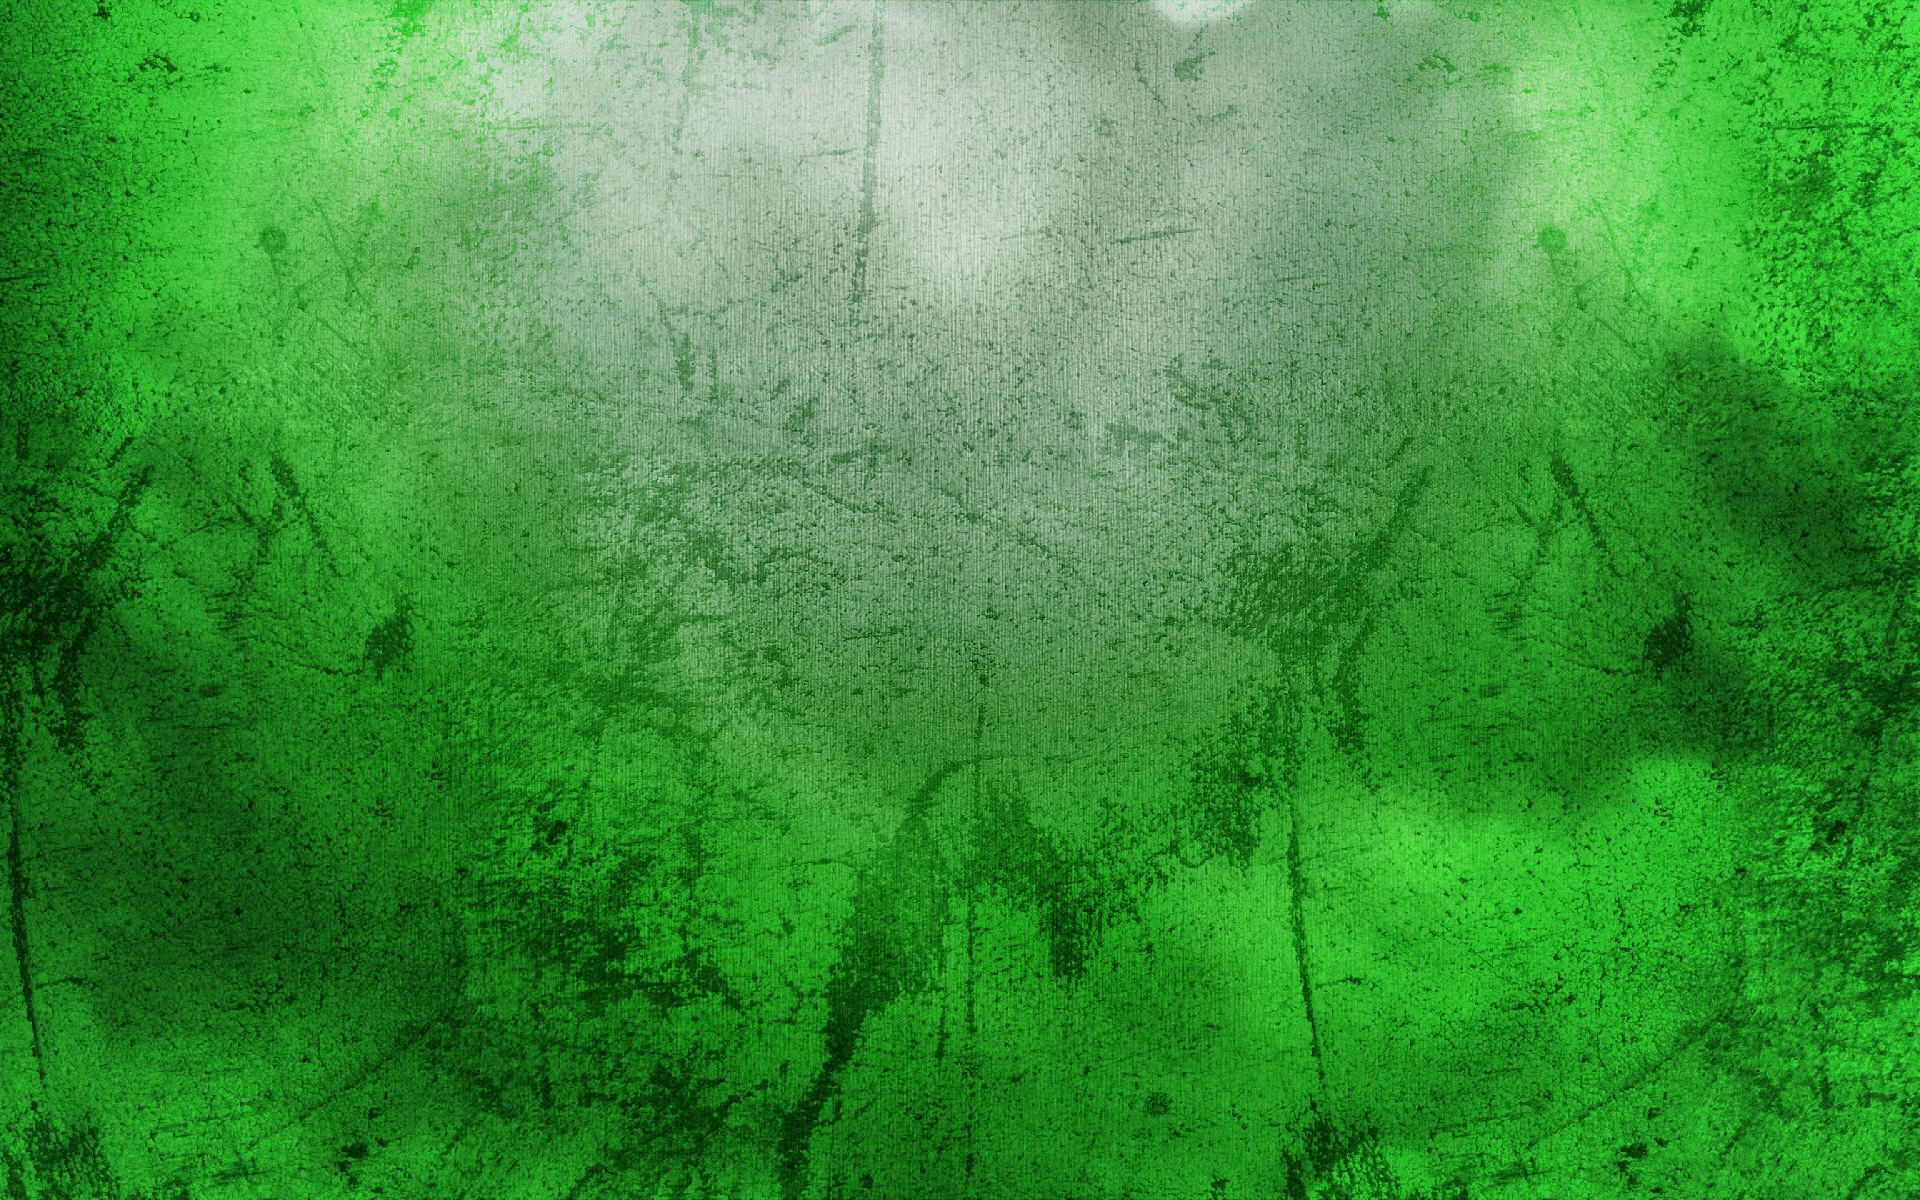 131337 download wallpaper Texture, Textures, Surface, Stains, Spots, Cracks, Crack, Mud, Dirt screensavers and pictures for free